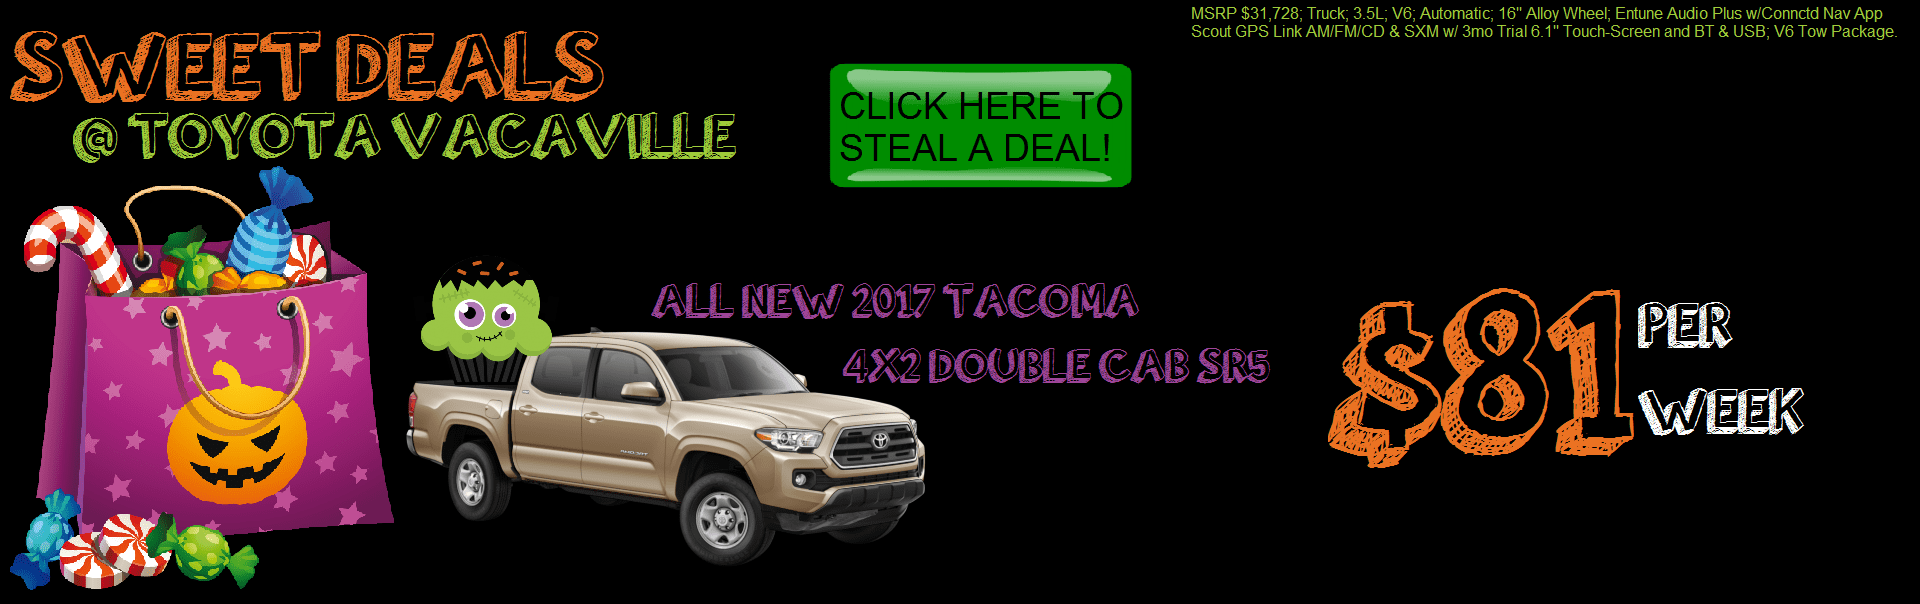 2017 Tacoma 4x2 SR5 Double Cab from Toyota Vacaville